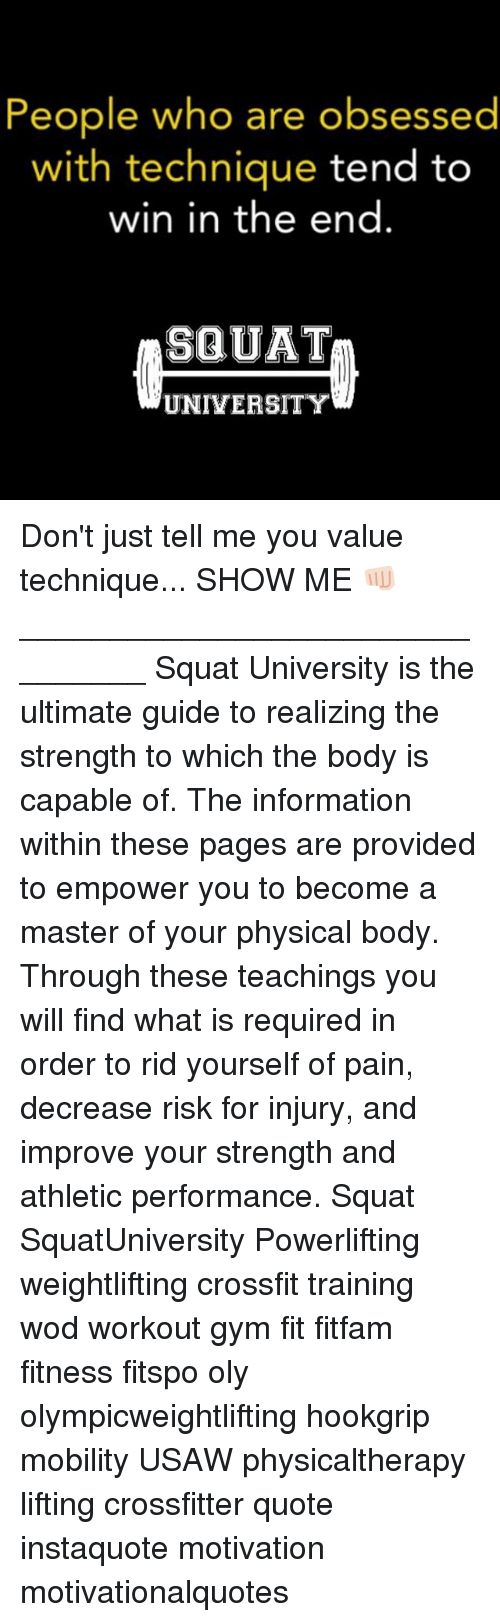 Squating: People who are obsessed  with technique tend to  win in the end  SQUAT  UNIVERSITY Don't just tell me you value technique... SHOW ME 👊🏻 ________________________________ Squat University is the ultimate guide to realizing the strength to which the body is capable of. The information within these pages are provided to empower you to become a master of your physical body. Through these teachings you will find what is required in order to rid yourself of pain, decrease risk for injury, and improve your strength and athletic performance. Squat SquatUniversity Powerlifting weightlifting crossfit training wod workout gym fit fitfam fitness fitspo oly olympicweightlifting hookgrip mobility USAW physicaltherapy lifting crossfitter quote instaquote motivation motivationalquotes